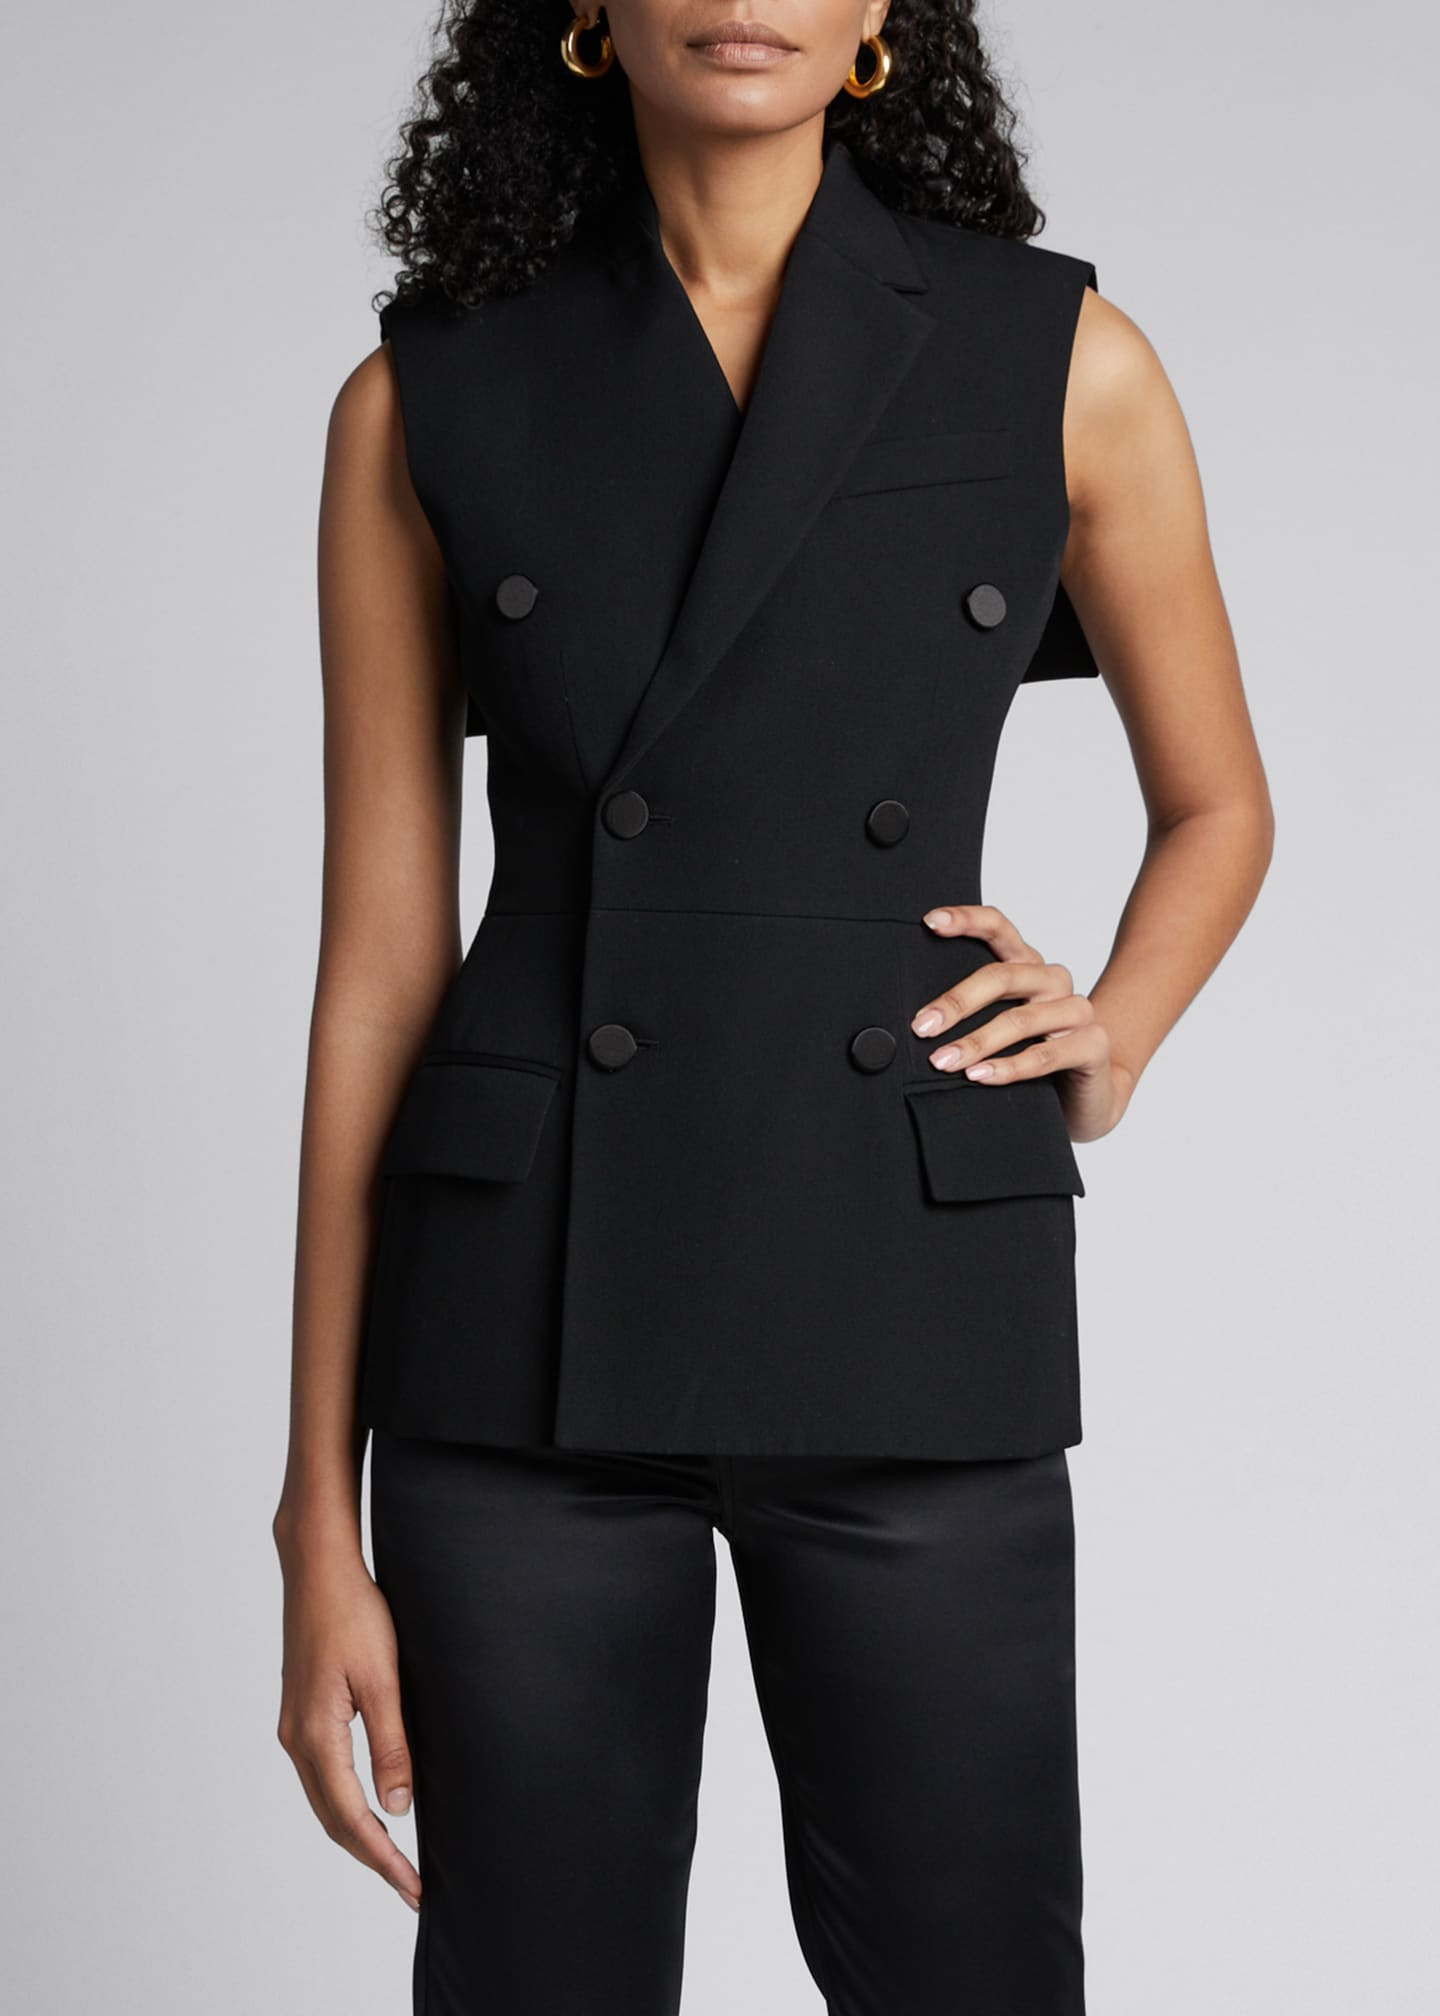 Givenchy Wool Double-Breasted Fitted Vest with Cape